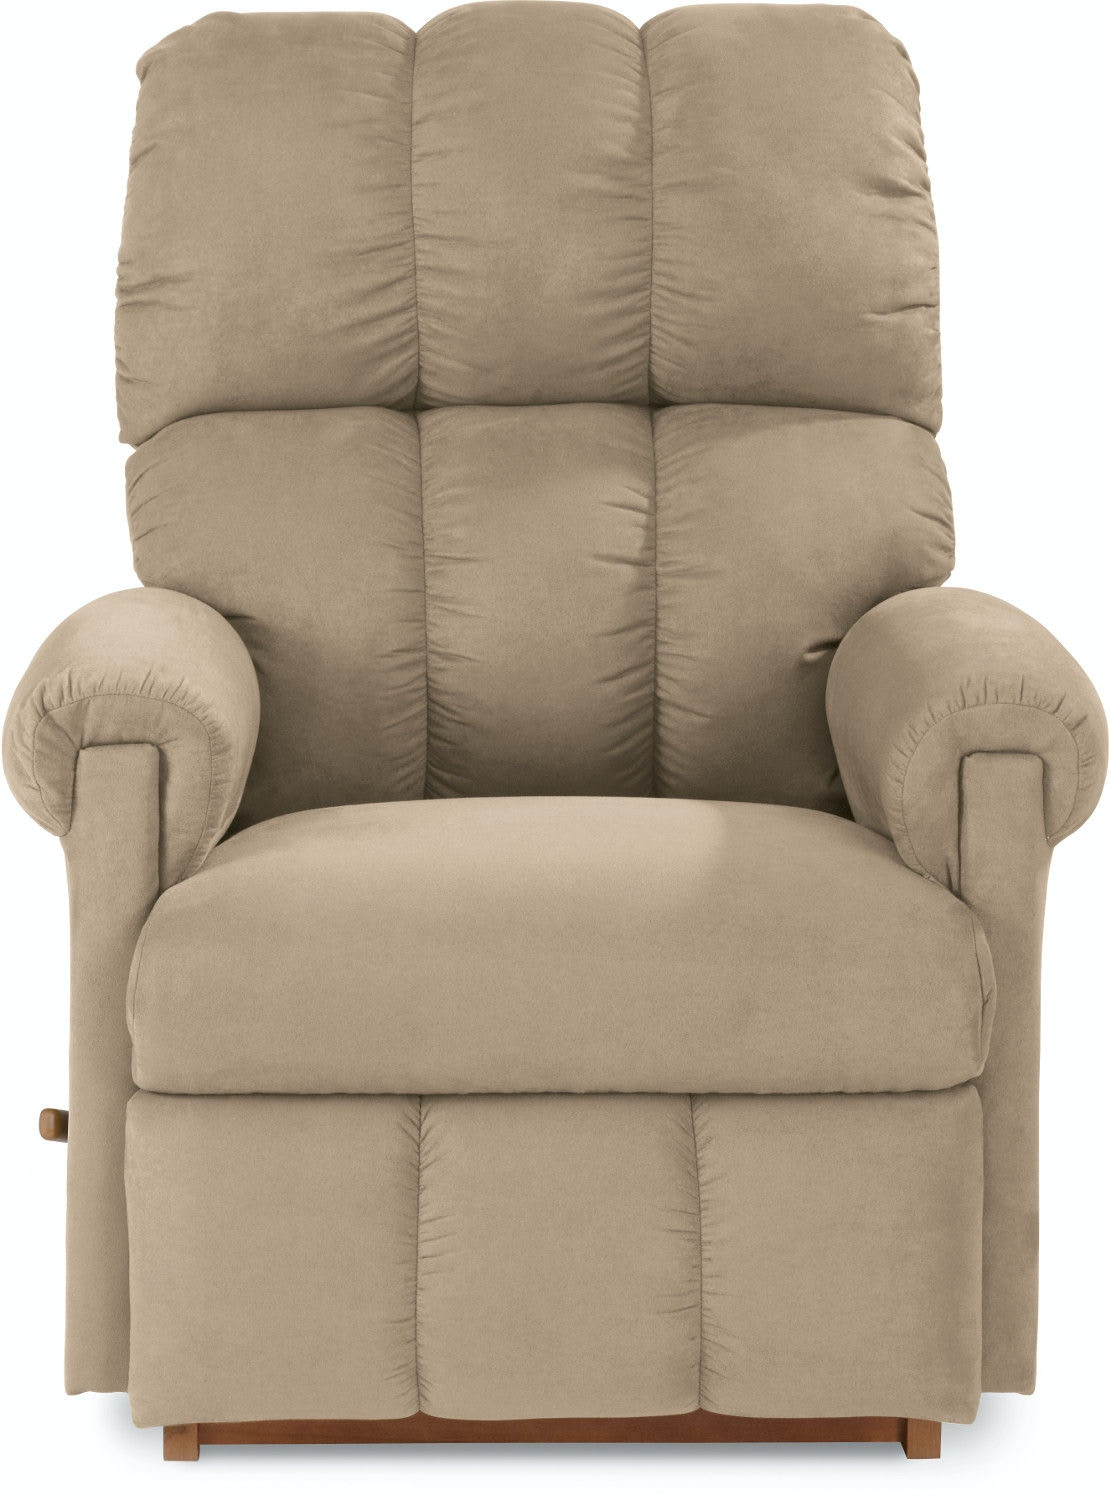 La Z Boy Living Room Reclina Rocker 174 Recliner 010403